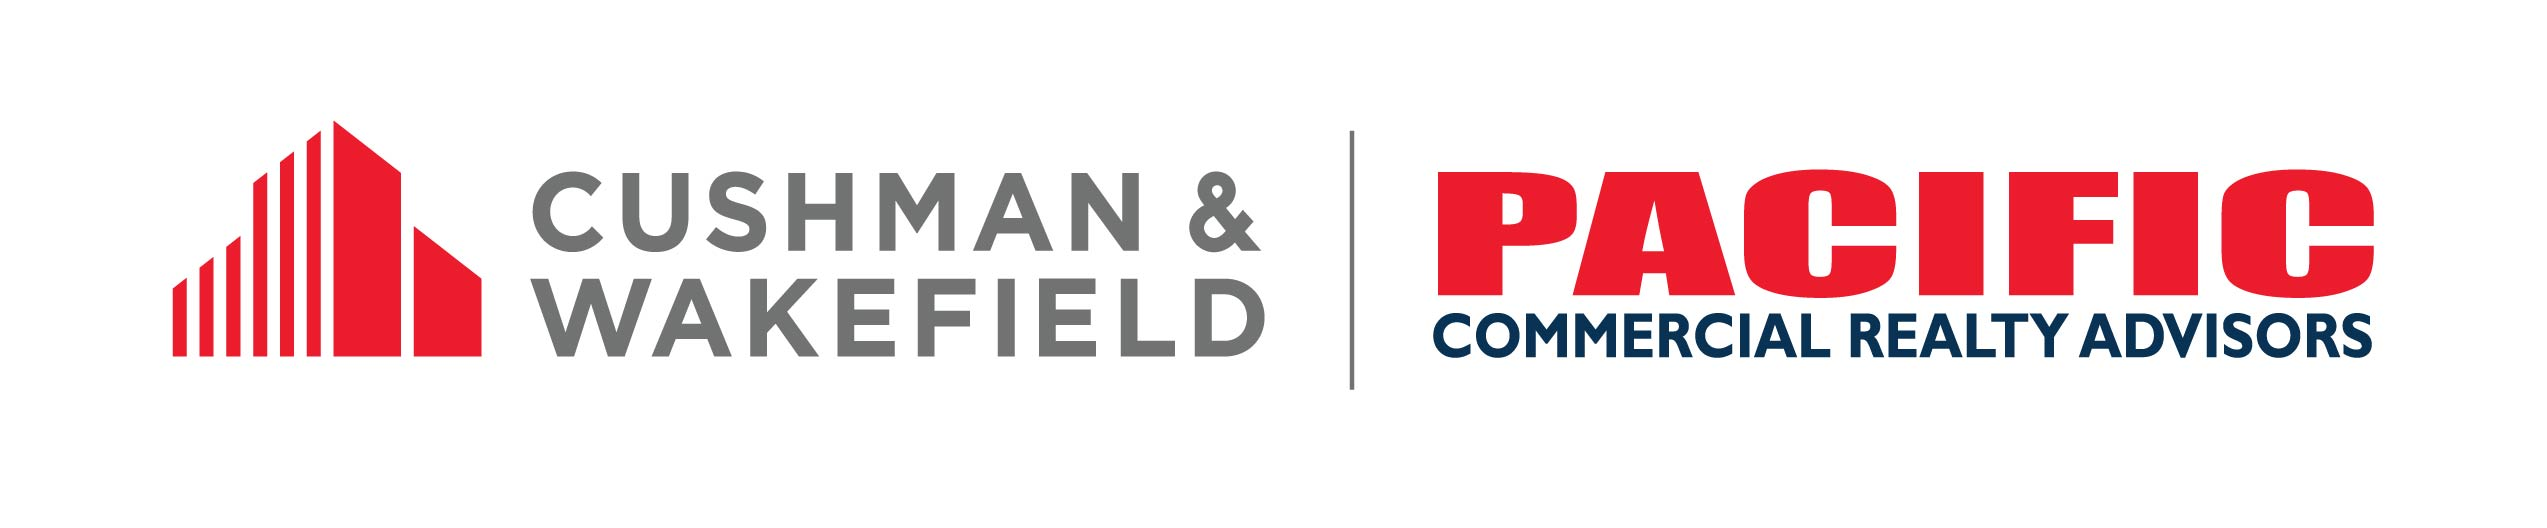 Cushman & Wakefield Pacific Commerce Realty Advisors - Property Management